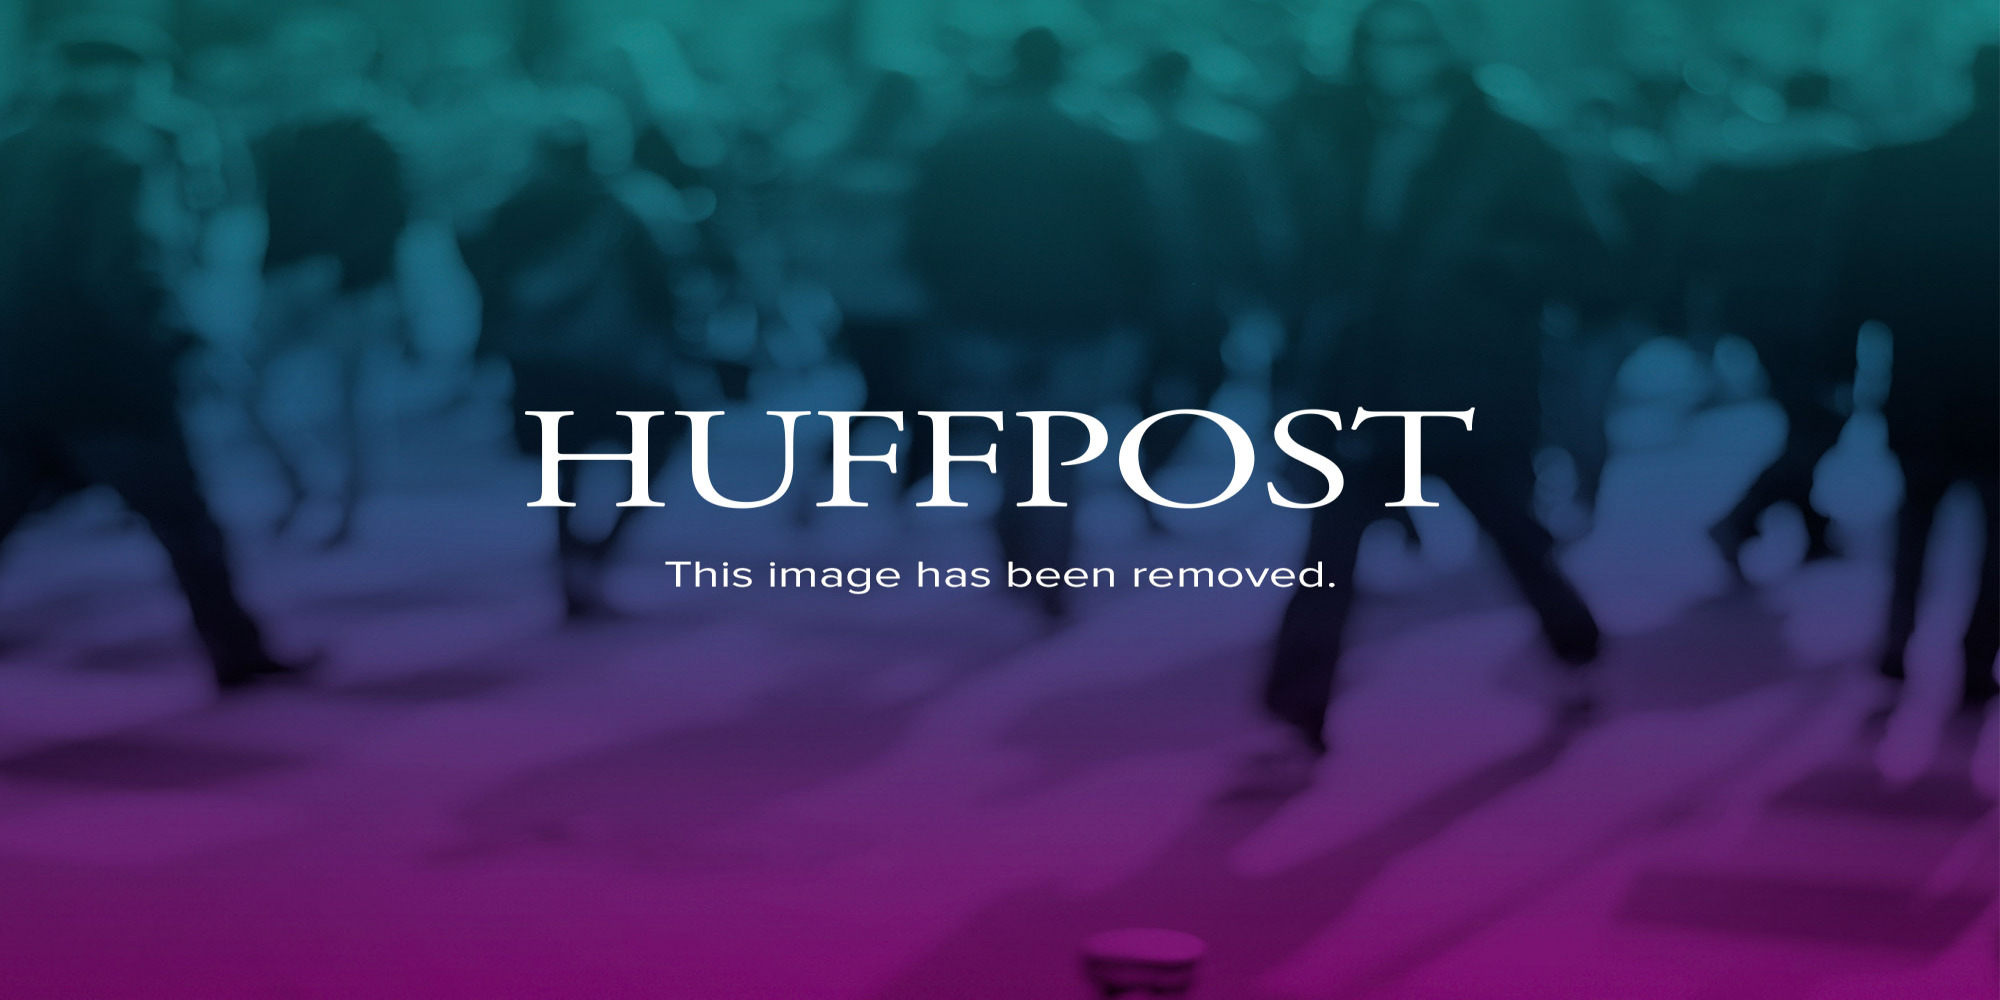 http://i.huffpost.com/gen/963637/thumbs/o-HURRICANE-KATRINA-DESTRUCTION-facebook.jpg